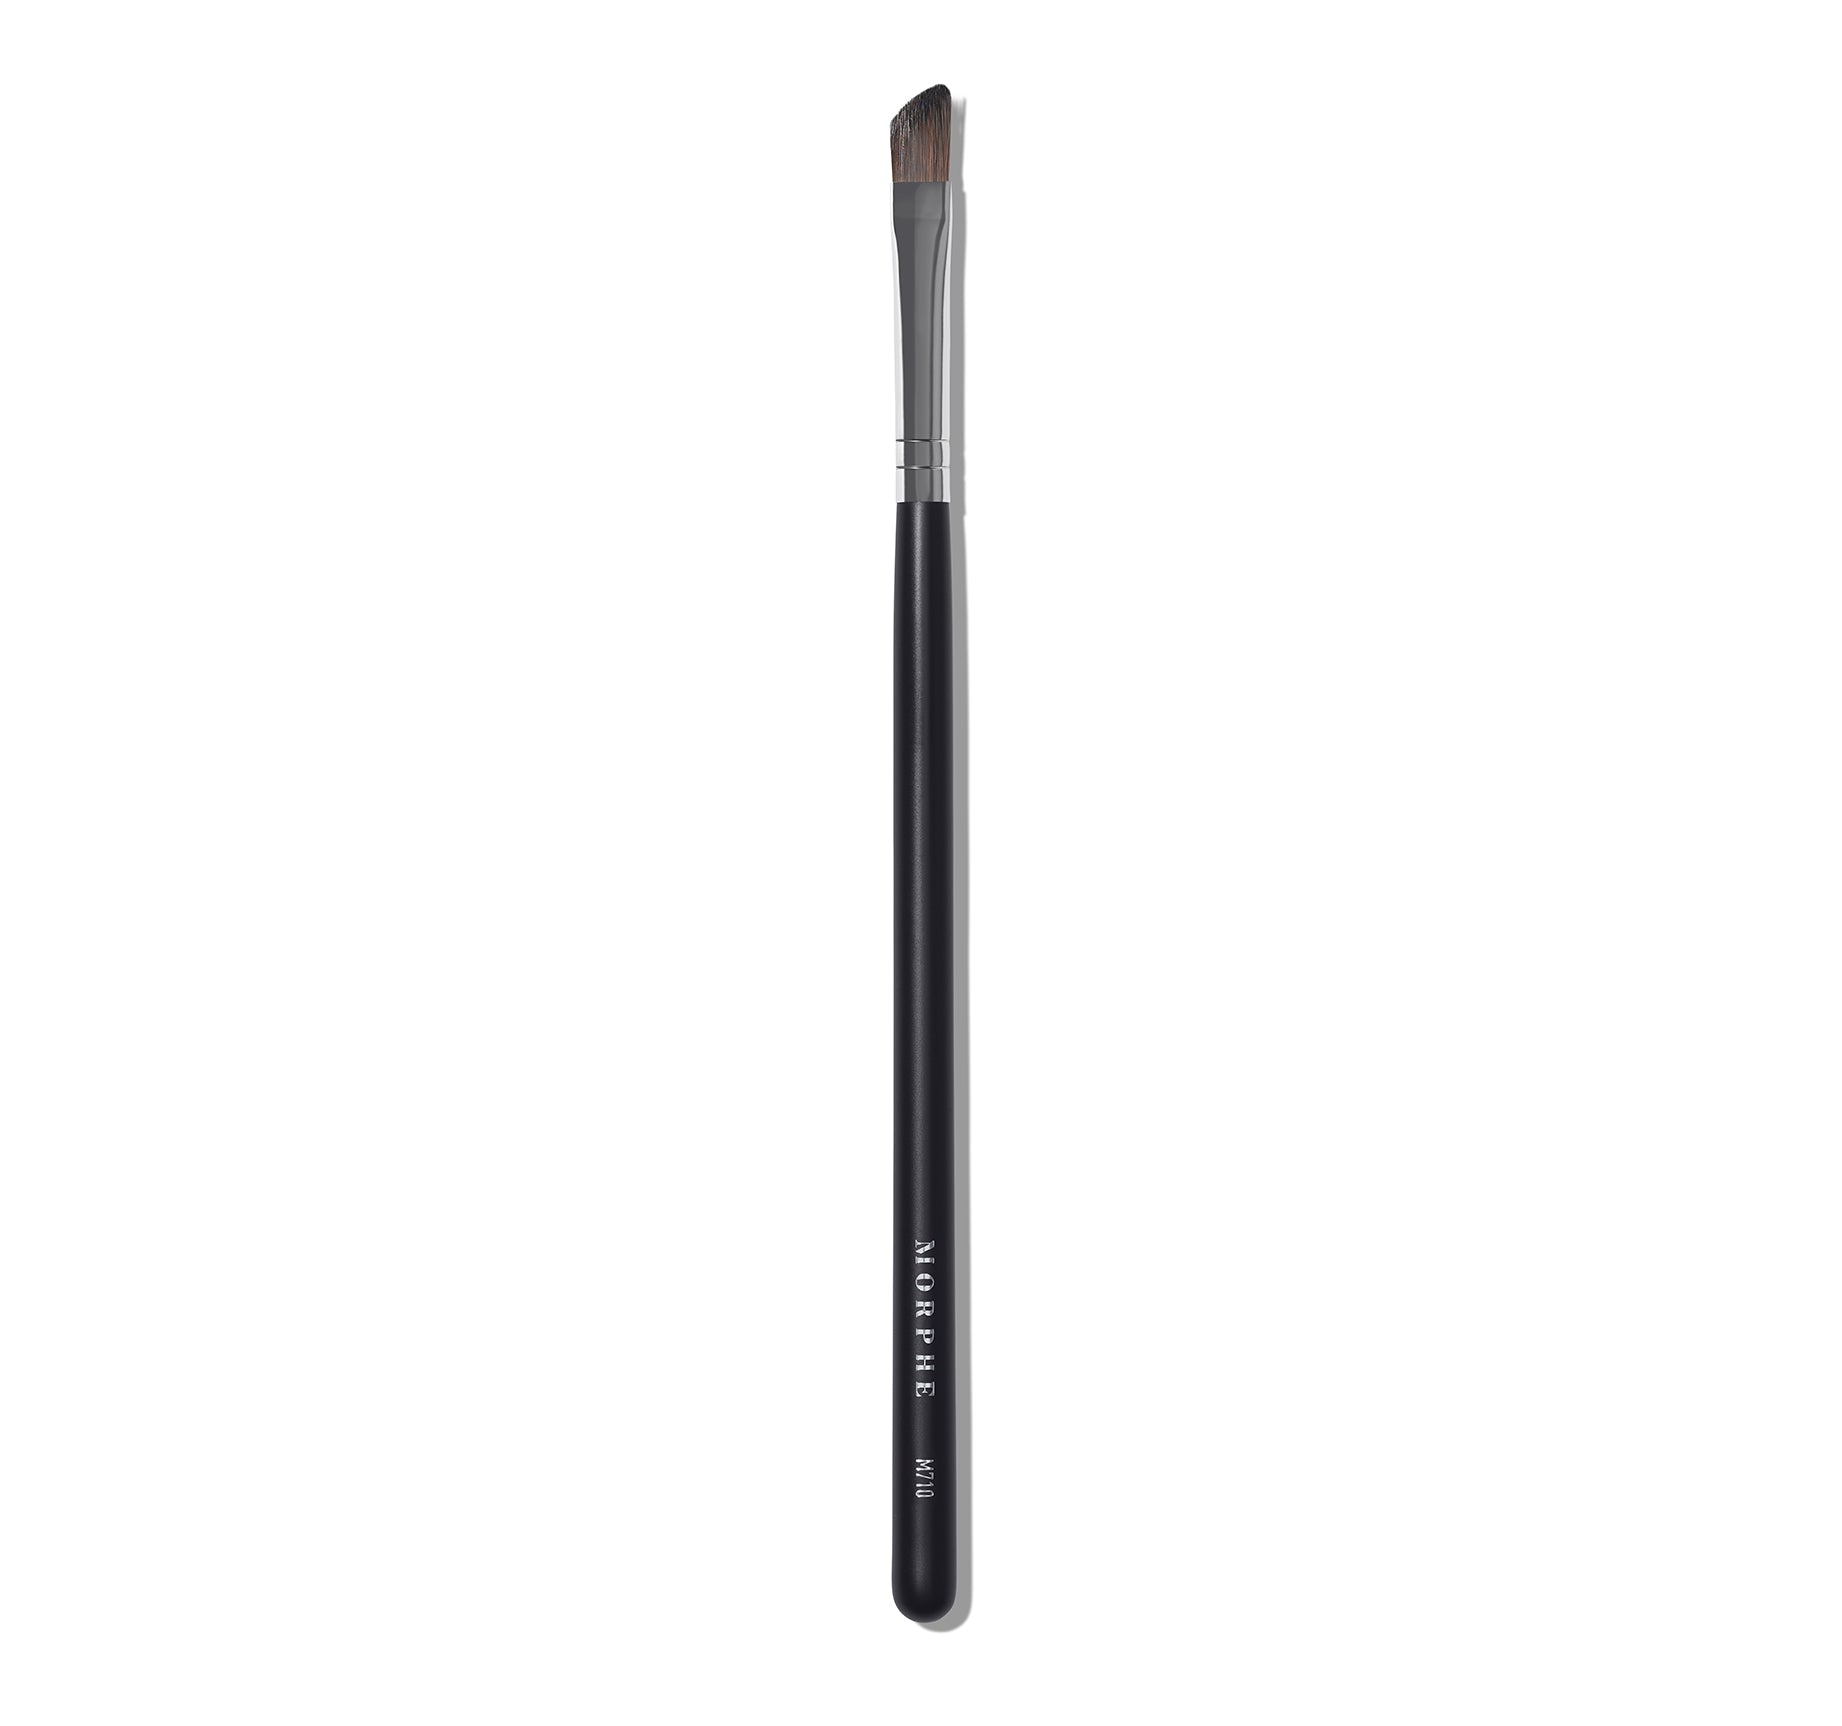 M710 ANGLED LIP BRUSH, view larger image